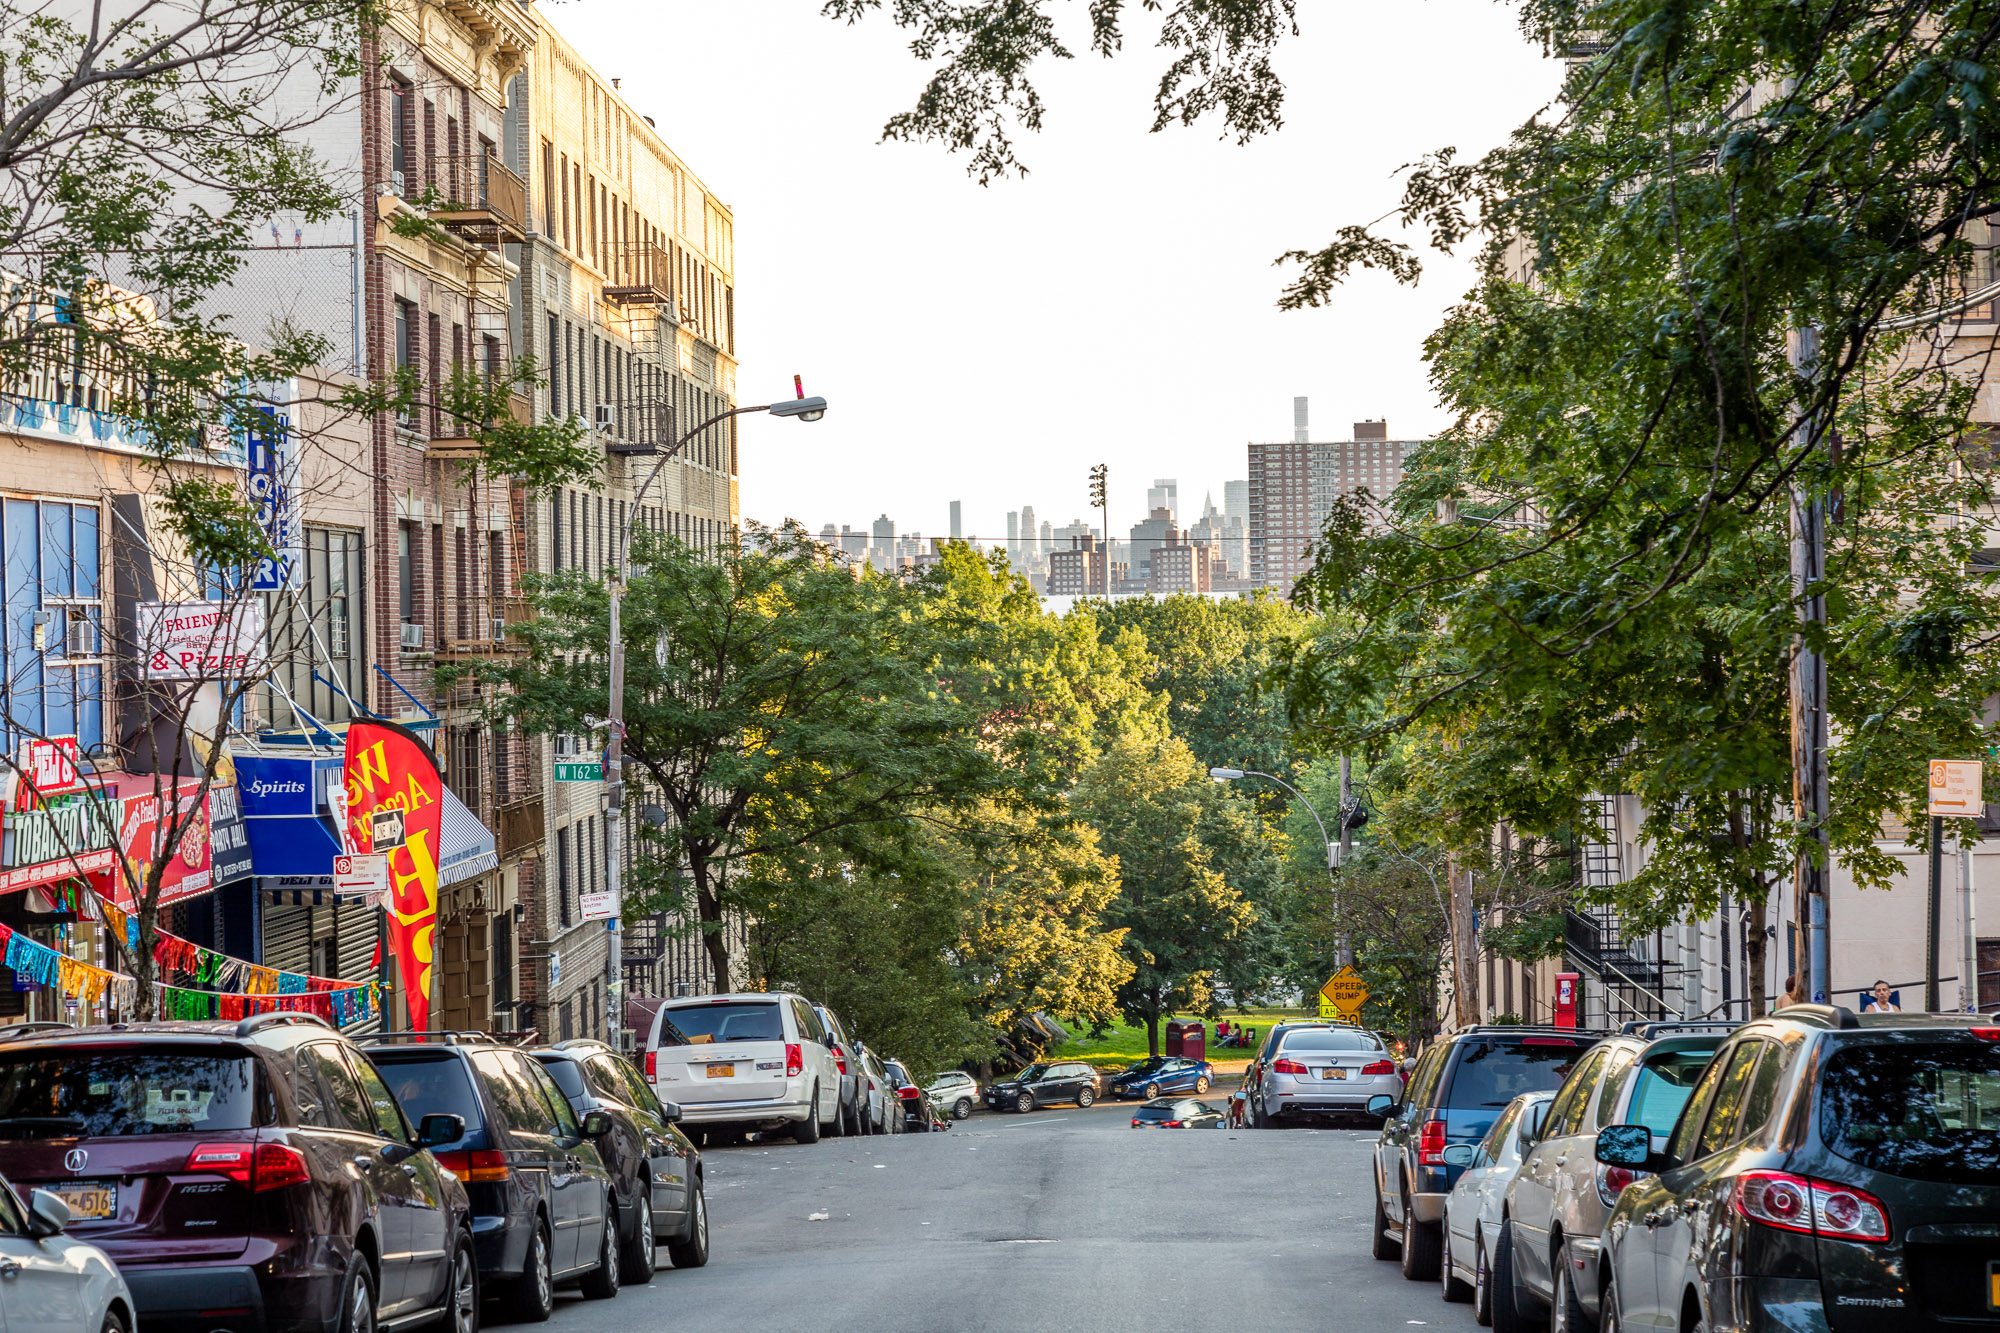 A view of a street in the Mount Eden section of the Bronx.